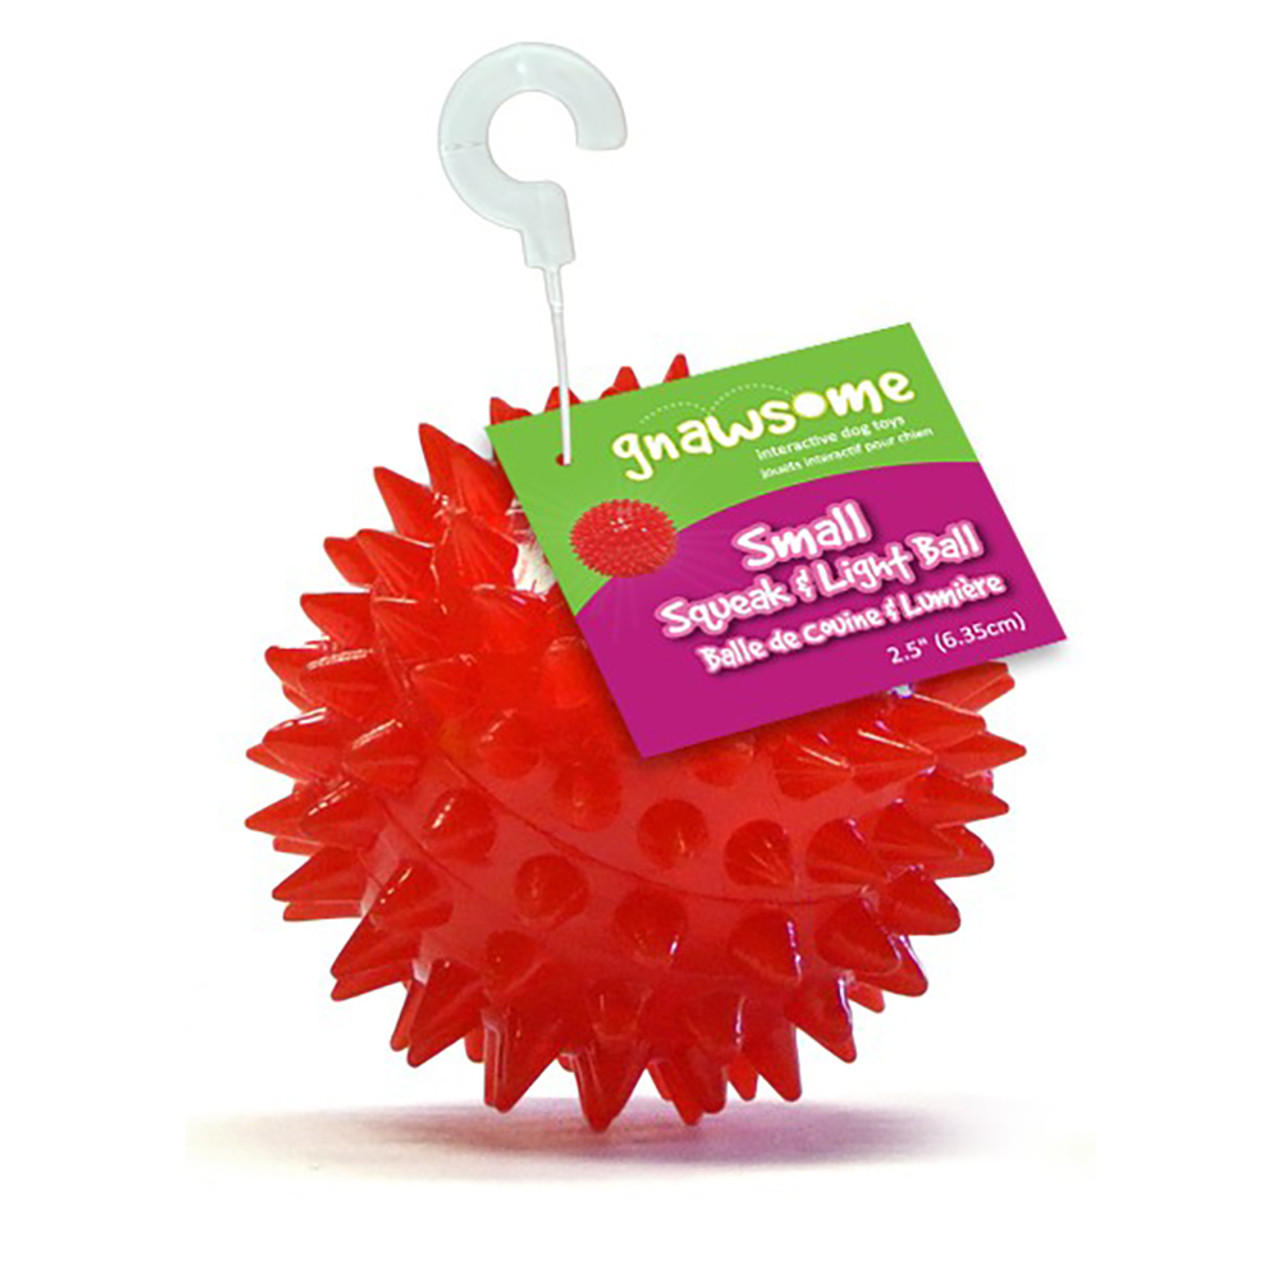 Gnawsome Squeak and Light Ball Dog Toy, Assorted Colors